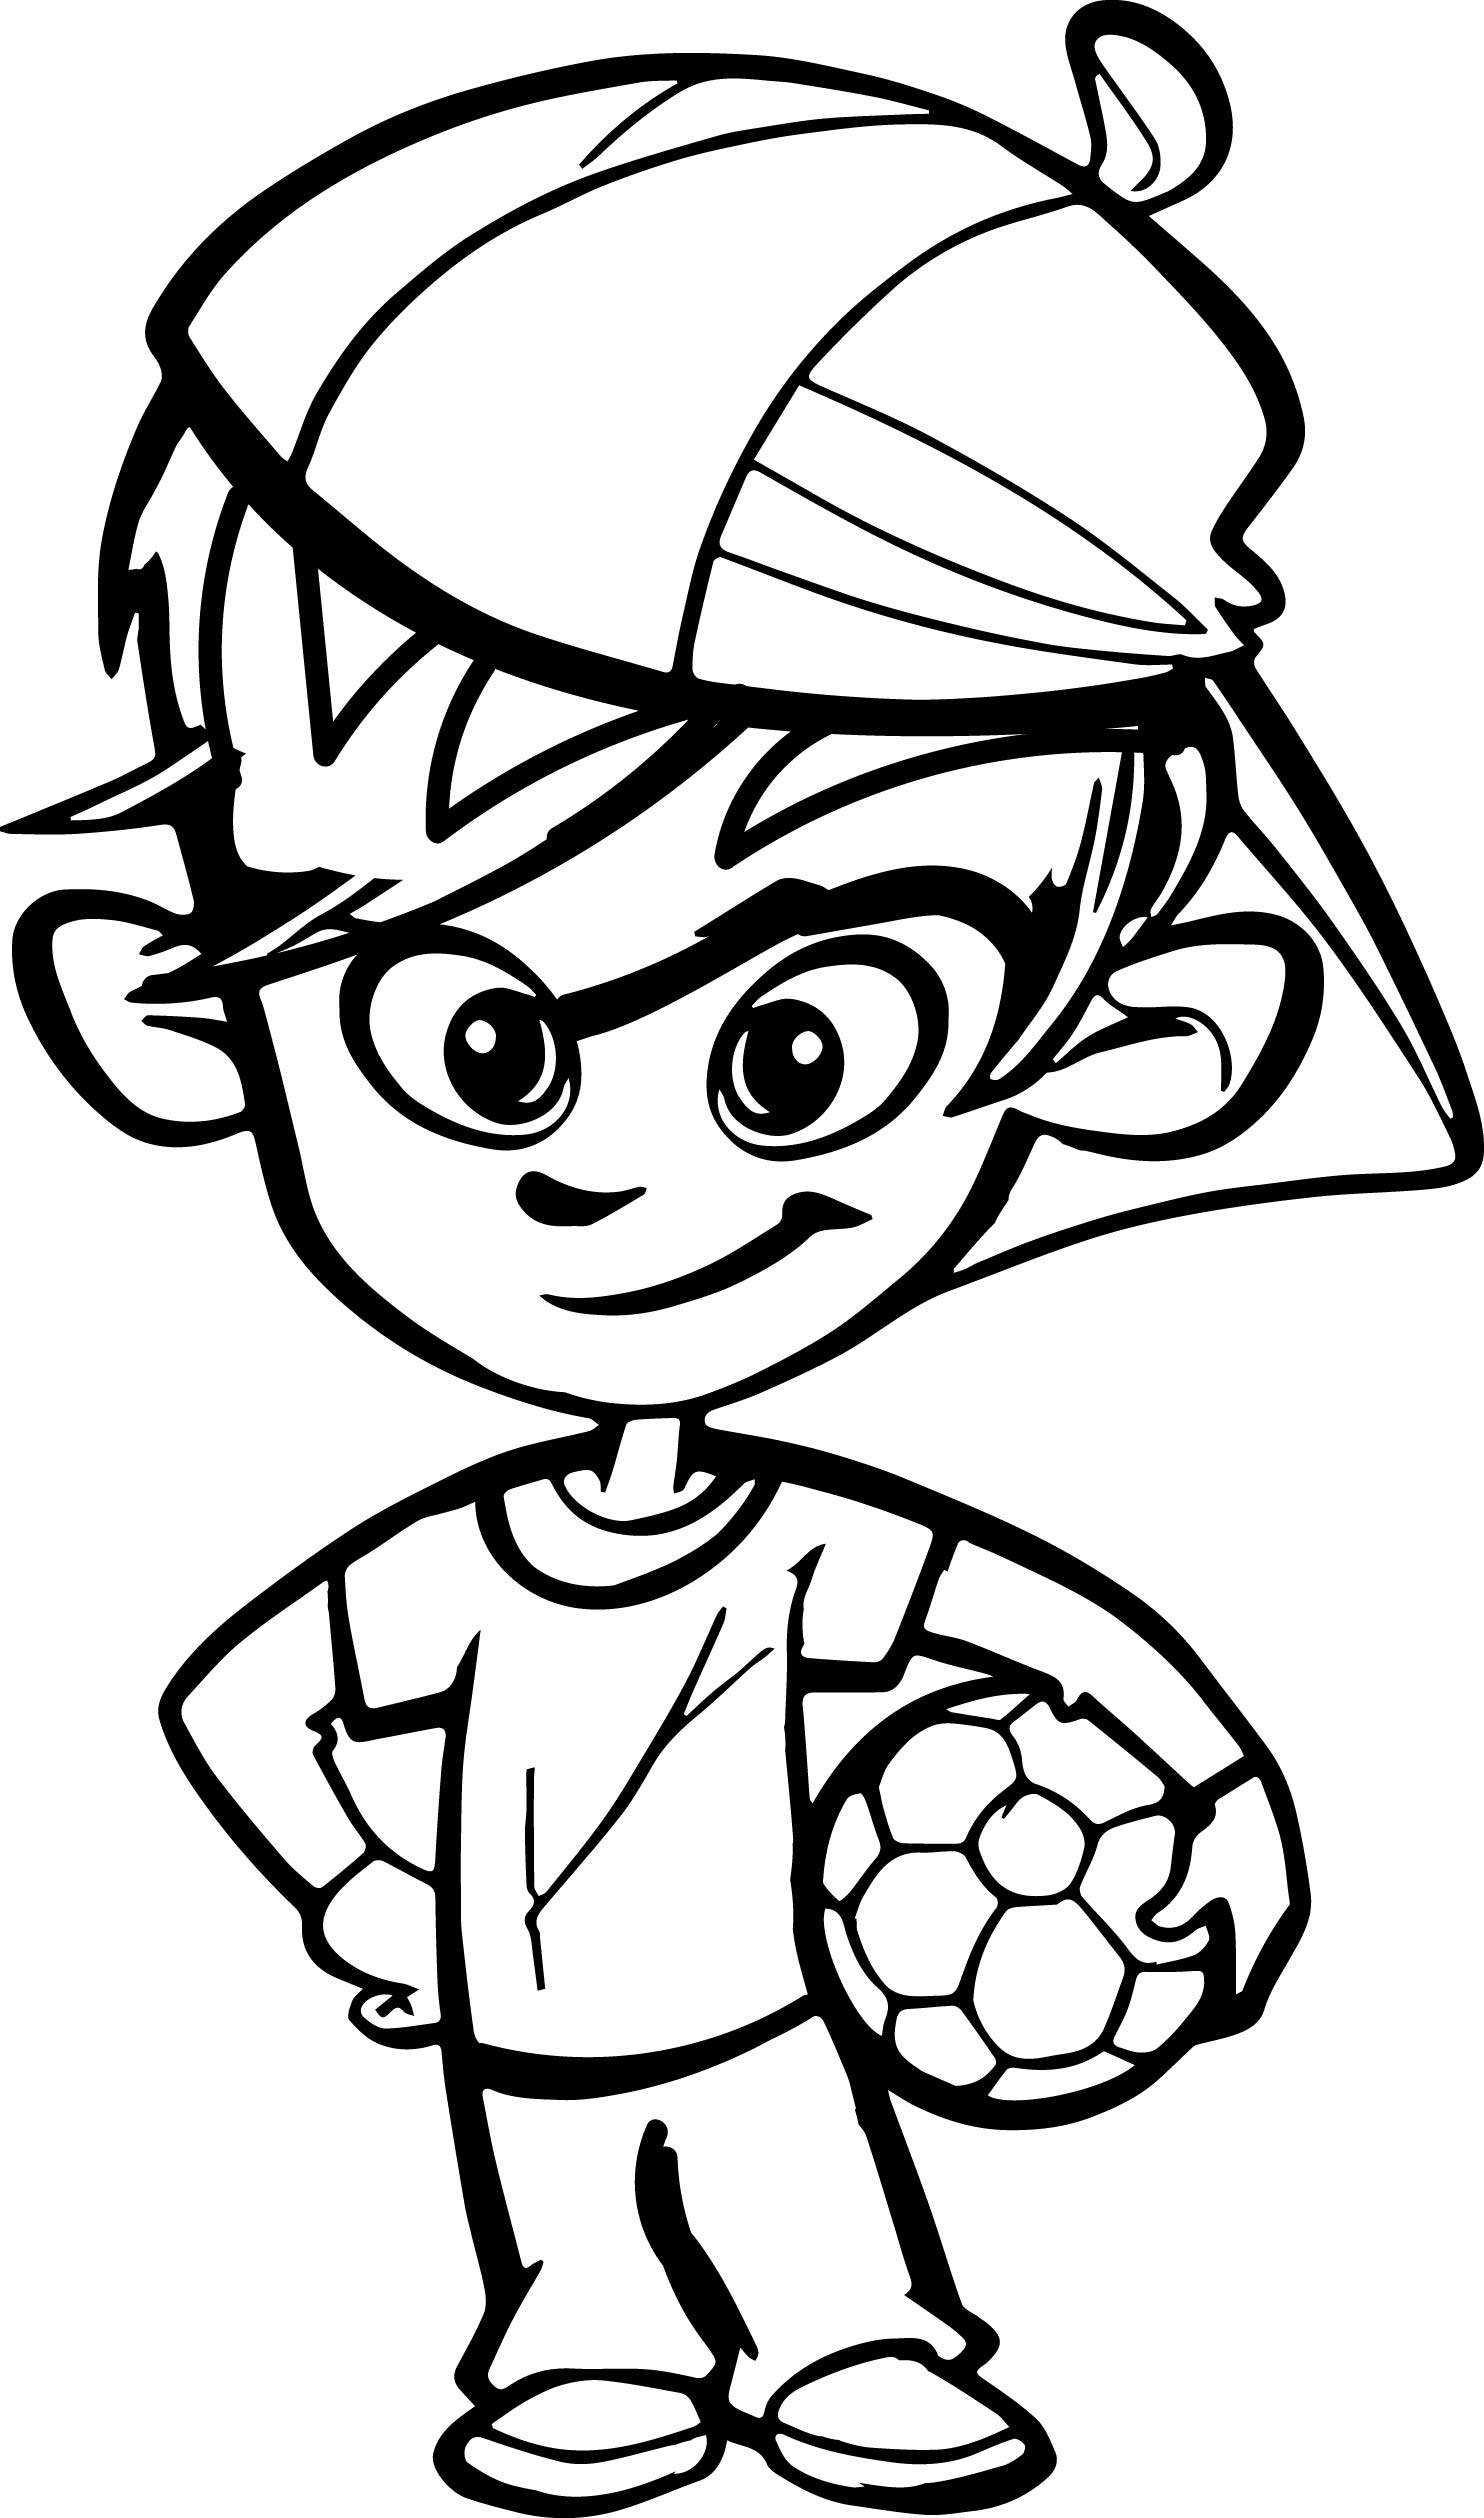 soccer coloring book pages - soccer player boy kid coloring page